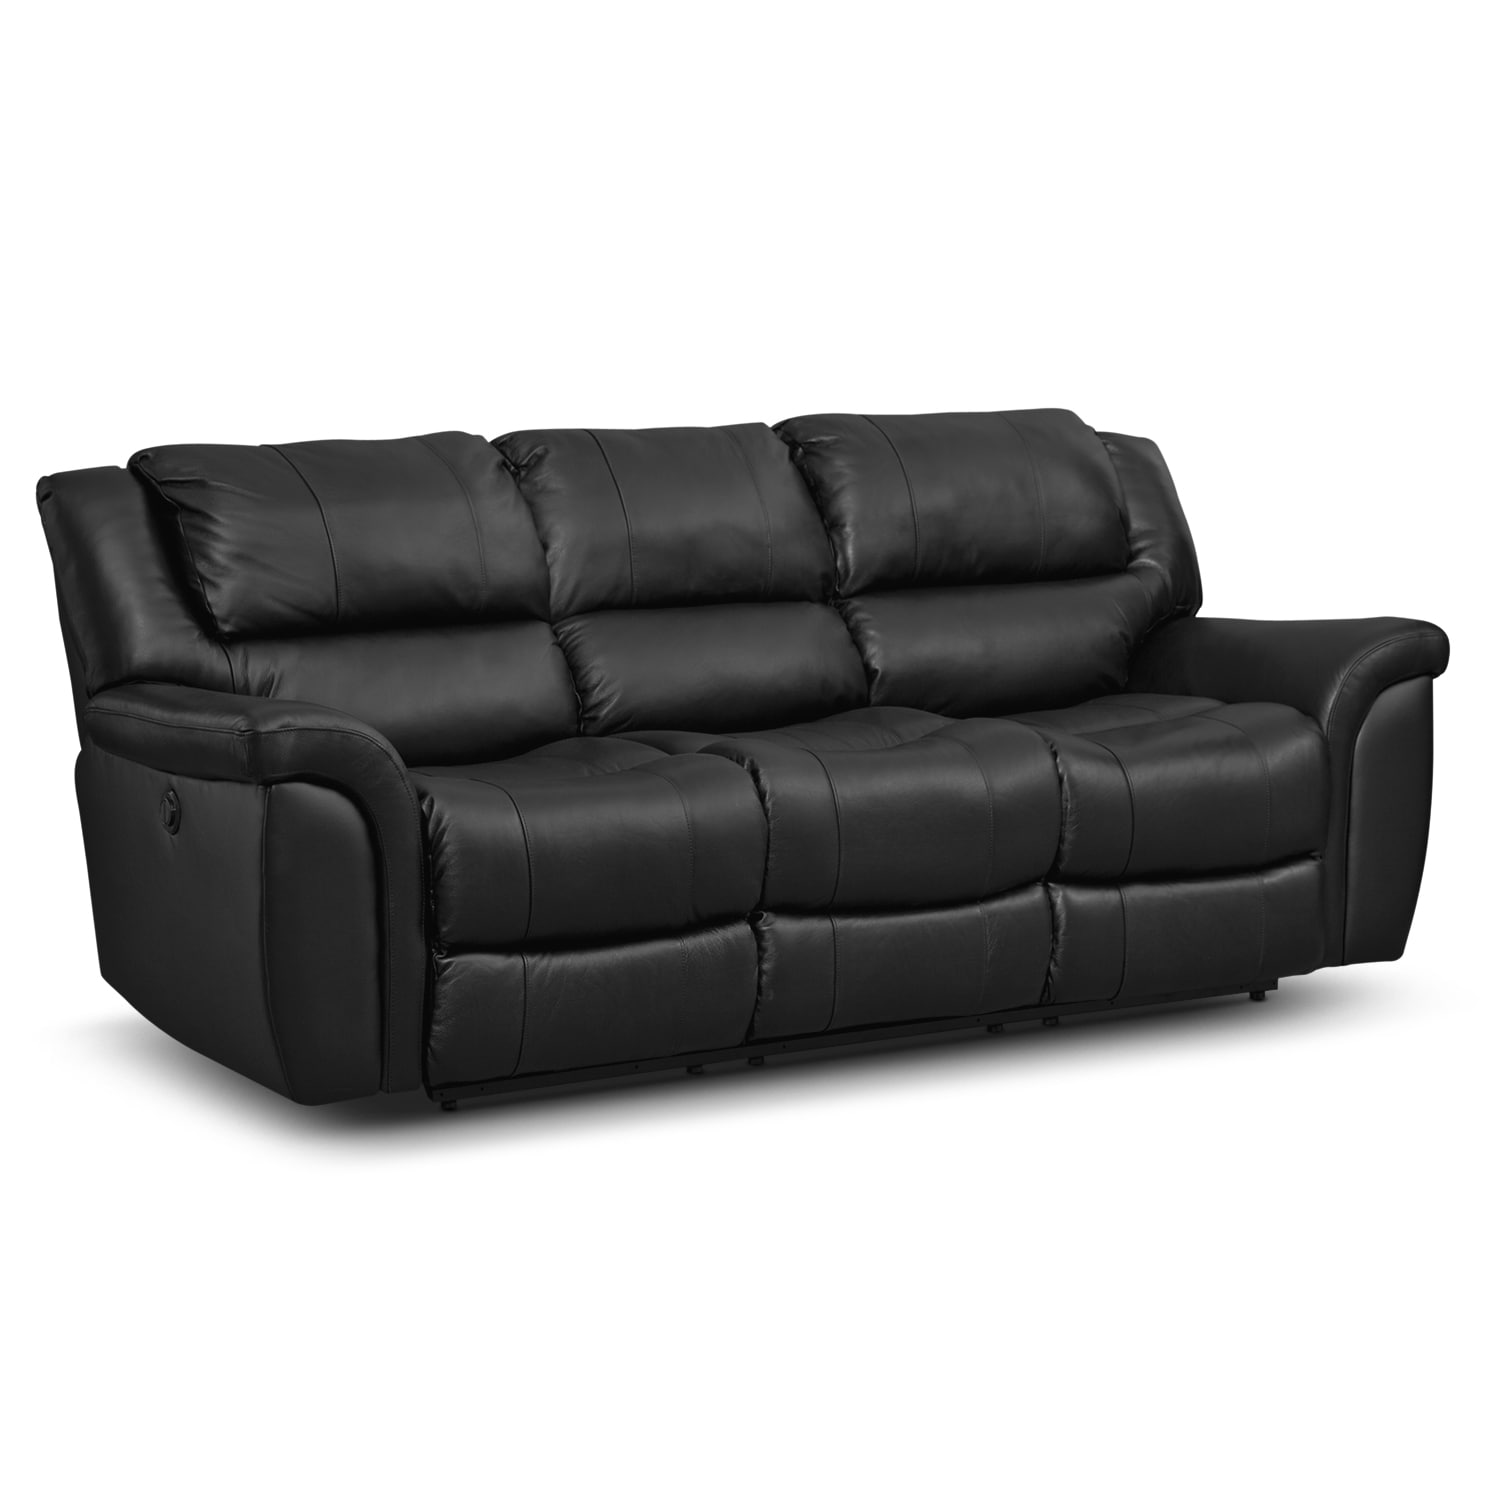 leather sectional sofas with power recliners brown sofa bed coming soon furniture